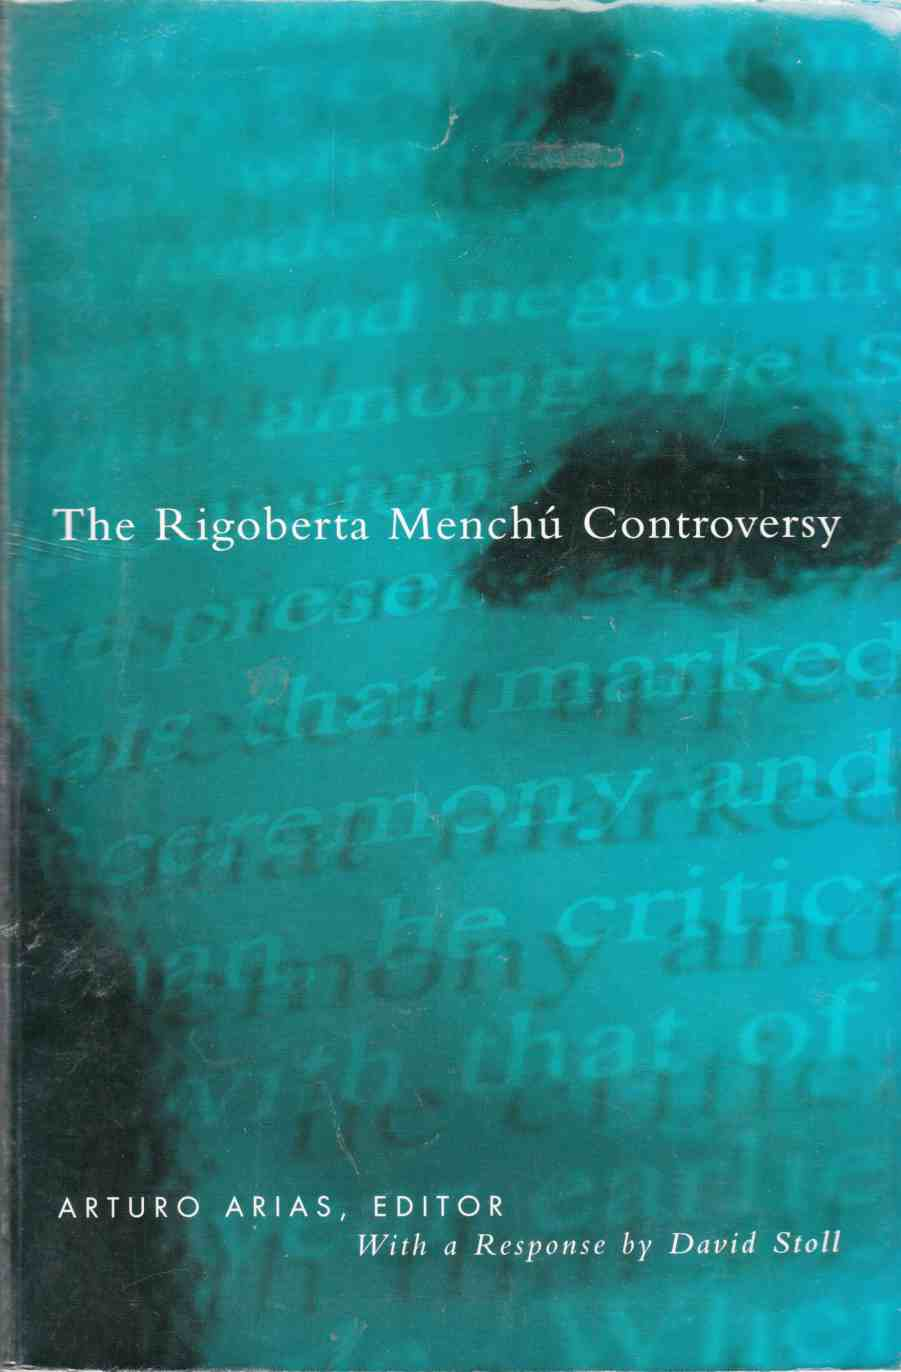 Image for The Rigoberta Menchú Controversy